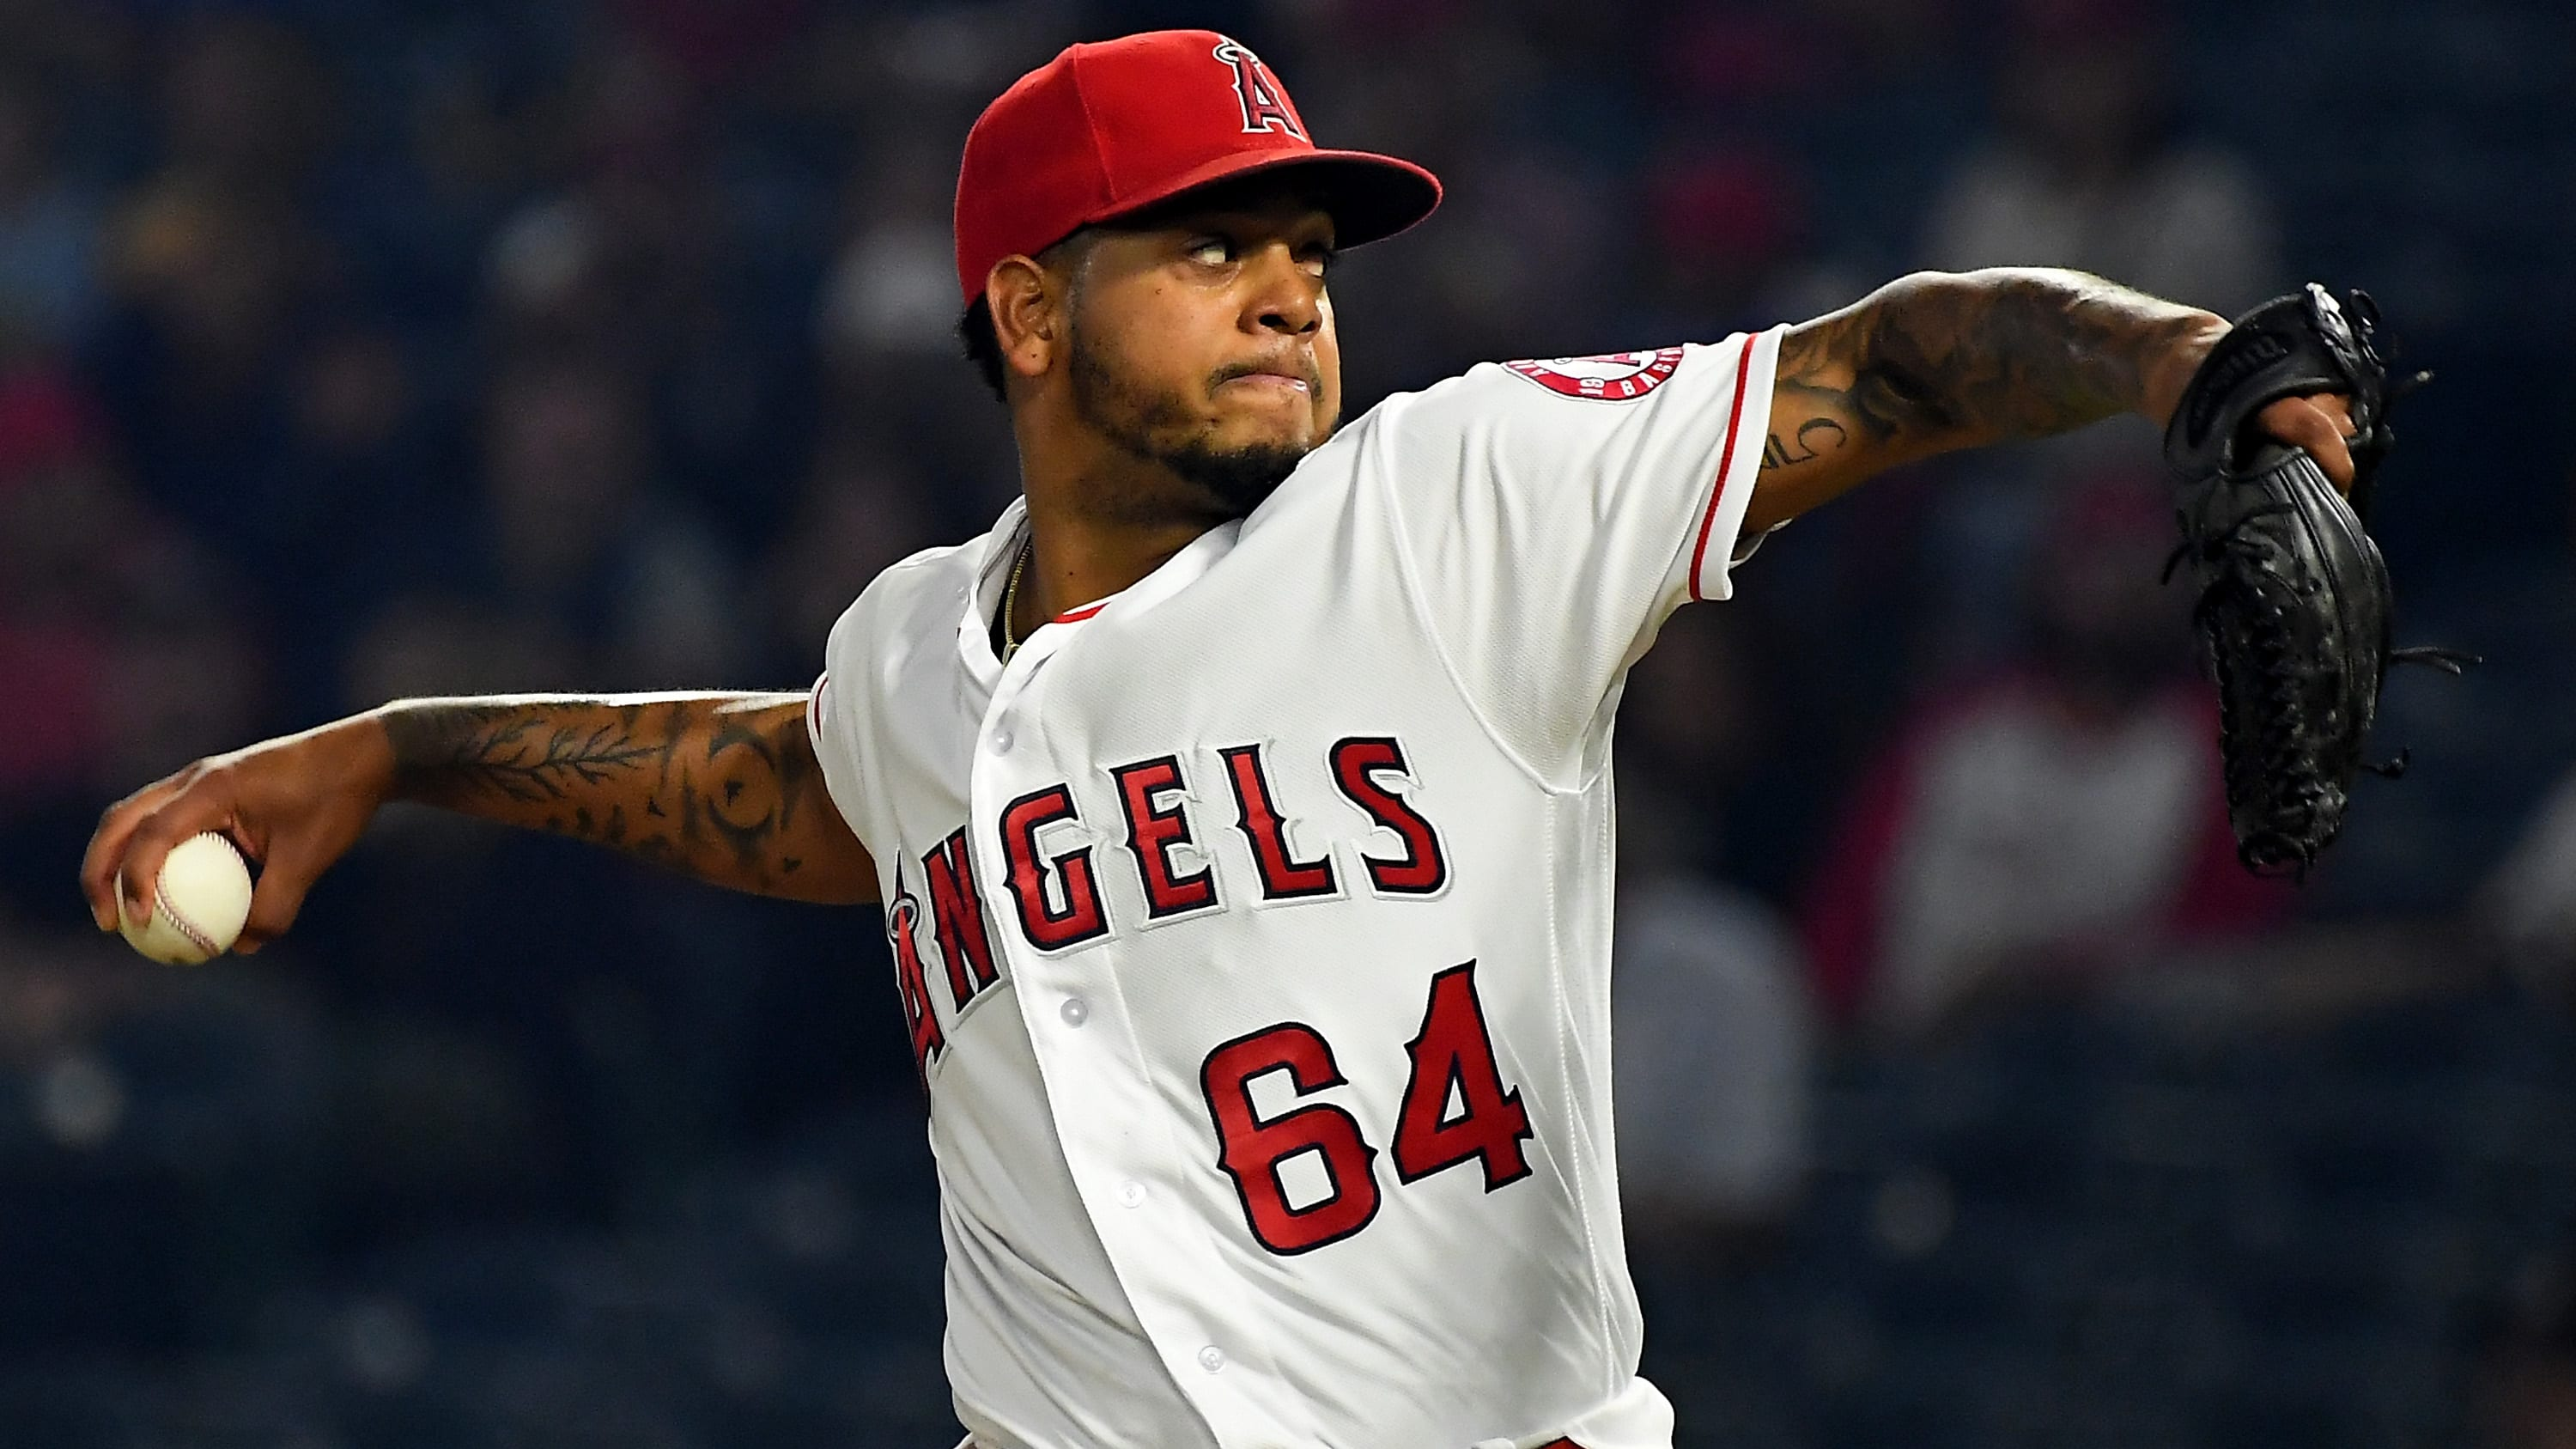 ANAHEIM, CA - SEPTEMBER 24:  Felix Pena #64 of the Los Angeles Angels of Anaheim pitches in the first inning of the game against the Texas Rangers at Angel Stadium on September 24, 2018 in Anaheim, California.  (Photo by Jayne Kamin-Oncea/Getty Images)